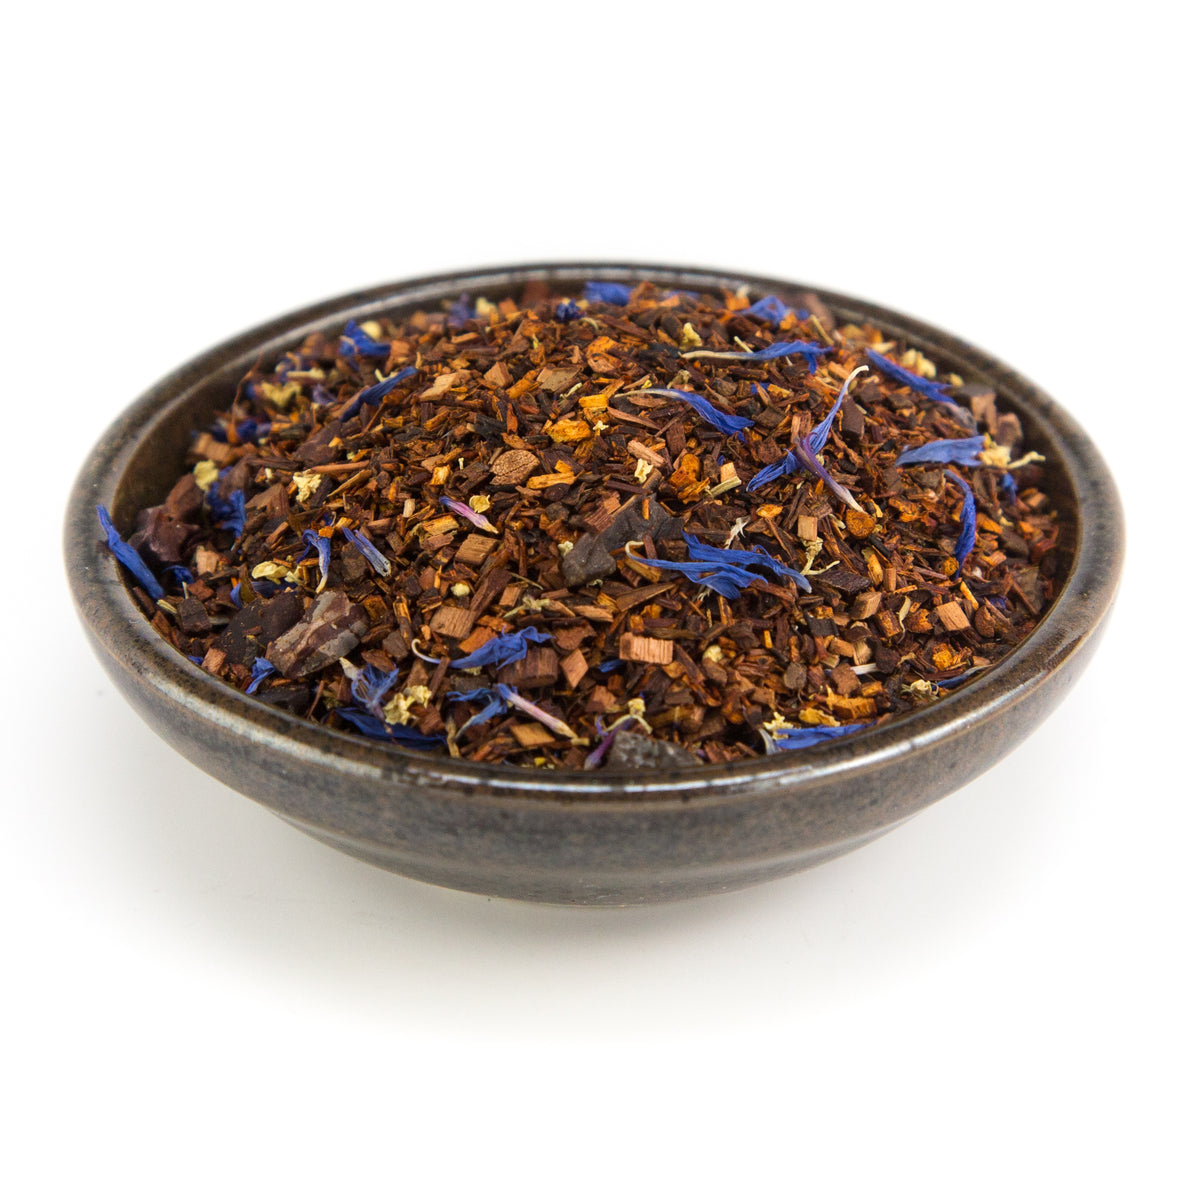 Nutcracker Herbal Tea - Tea - Red Stick Spice Company